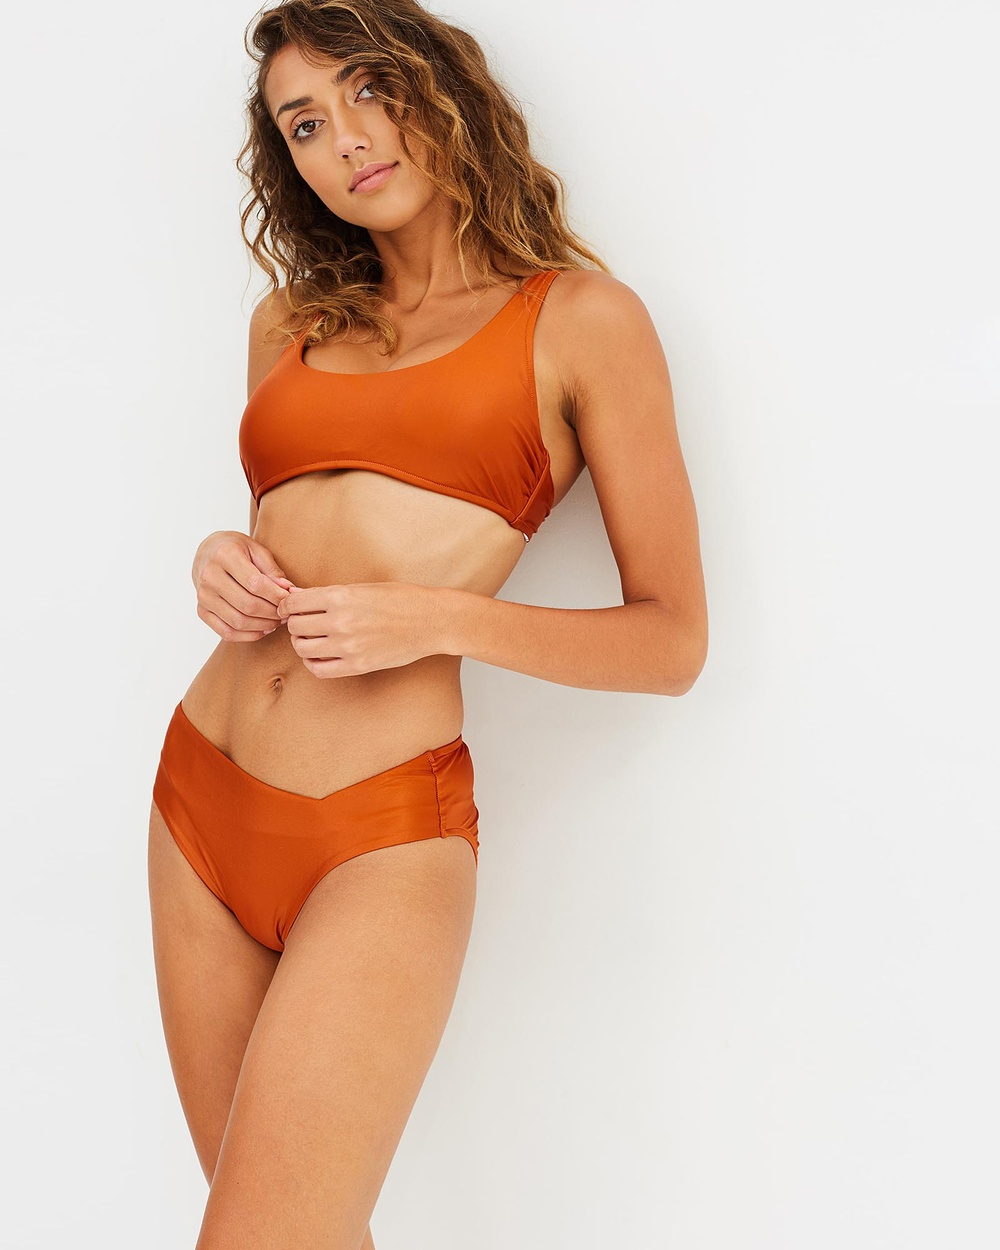 Bondi Born Butterfly Effect High Waist Cut Out Bikini Bottoms Bikini Bottoms Orange Butterfly Effect High Waist Cut-Out Bikini Bottoms